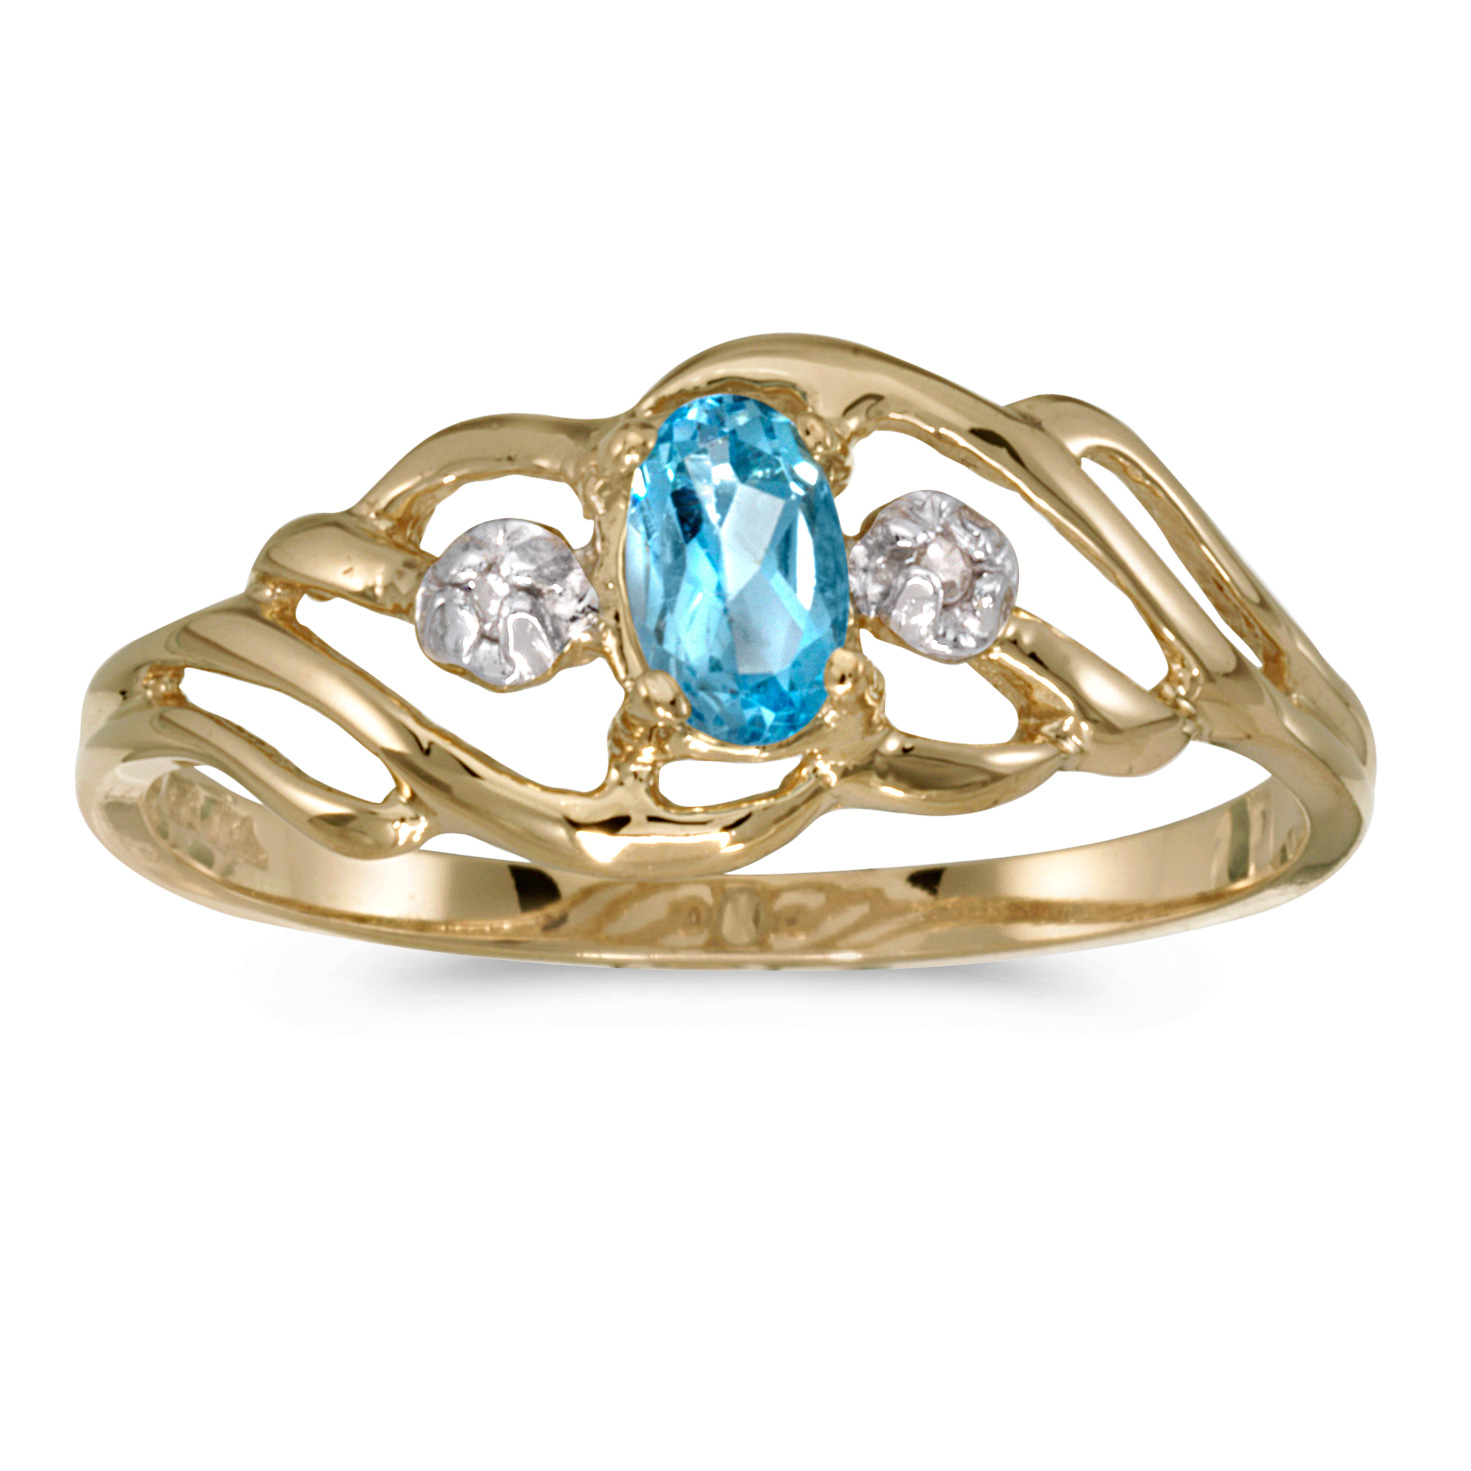 10k Yellow Gold Oval Blue Topaz And Diamond Ring by